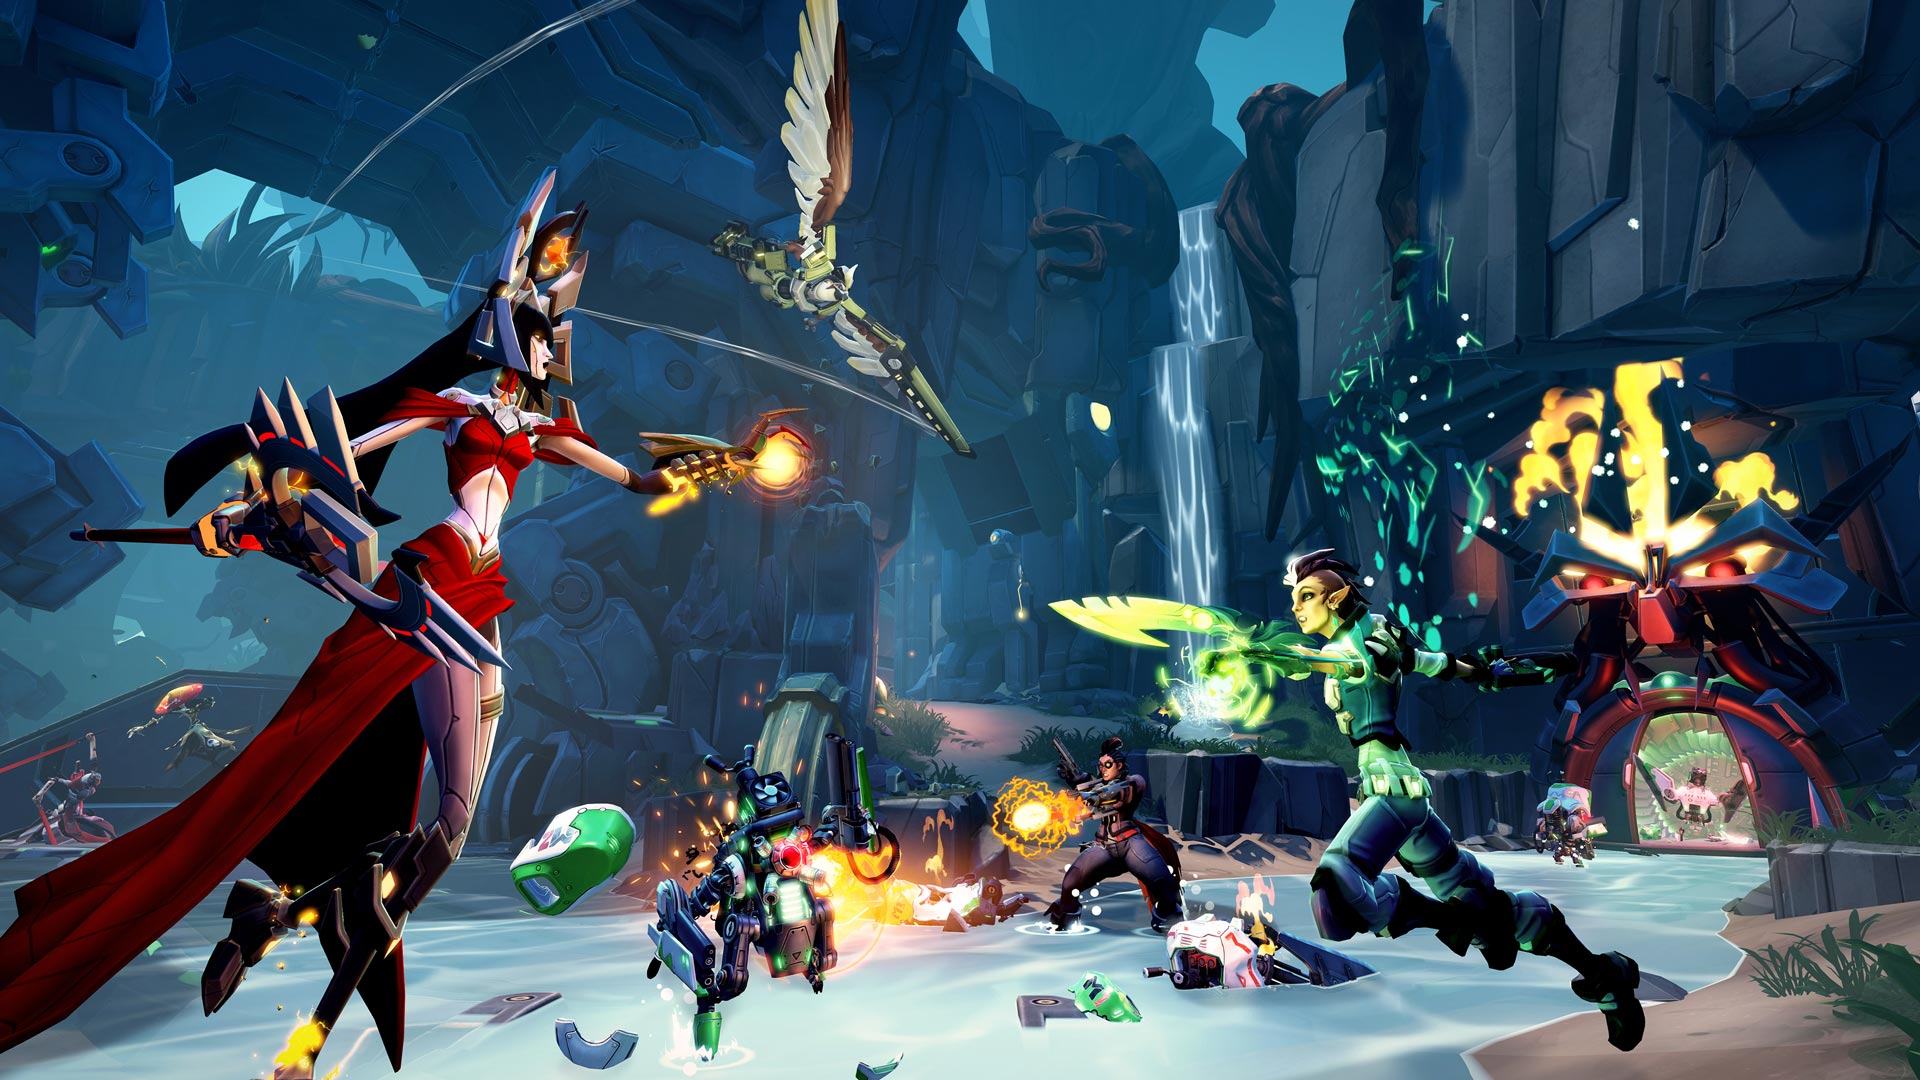 Battleborn's concurrent players will drop from 15 to 0 in 2021 screenshot